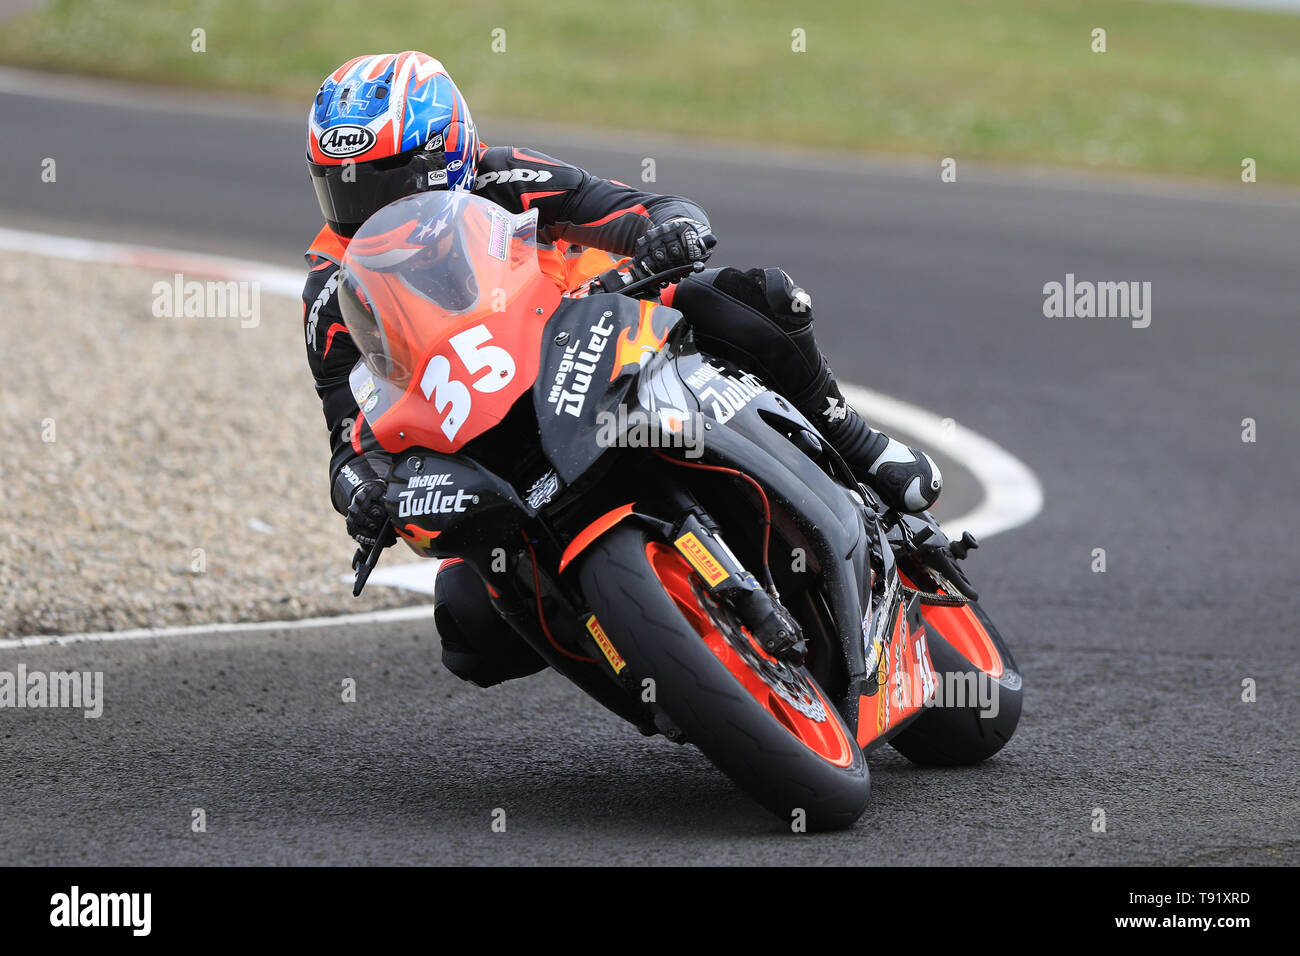 Portrush, Northern Ireland. 16th May, 2019. International North West 200 Motorcycle road racing, Thursday practice and evening racing; USA's Patricia Fernandez on the Patricia Fernandez Racing Magic Bullet Kawasaki during the SuperStock qualifying session Credit: Action Plus Sports/Alamy Live News - Stock Image